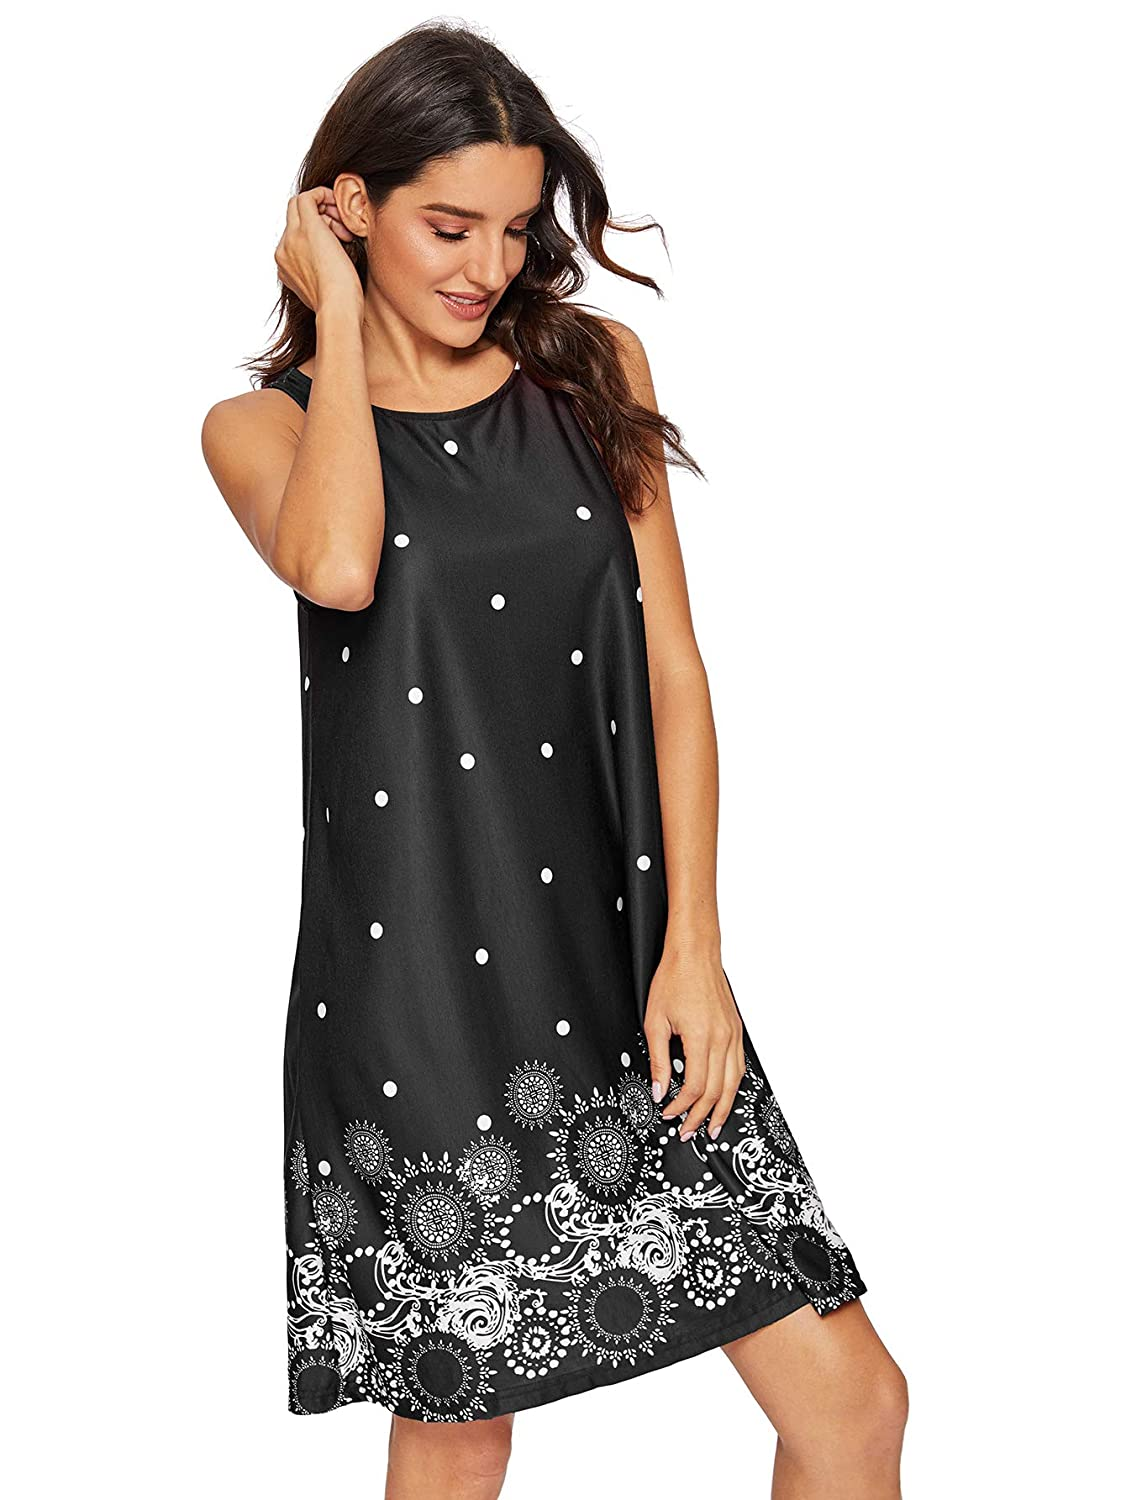 eee03a77f5e6f1 Romwe Women s Summer Sundress Floral Printed Sleeveless Casual A Line Dress  at Amazon Women s Clothing store